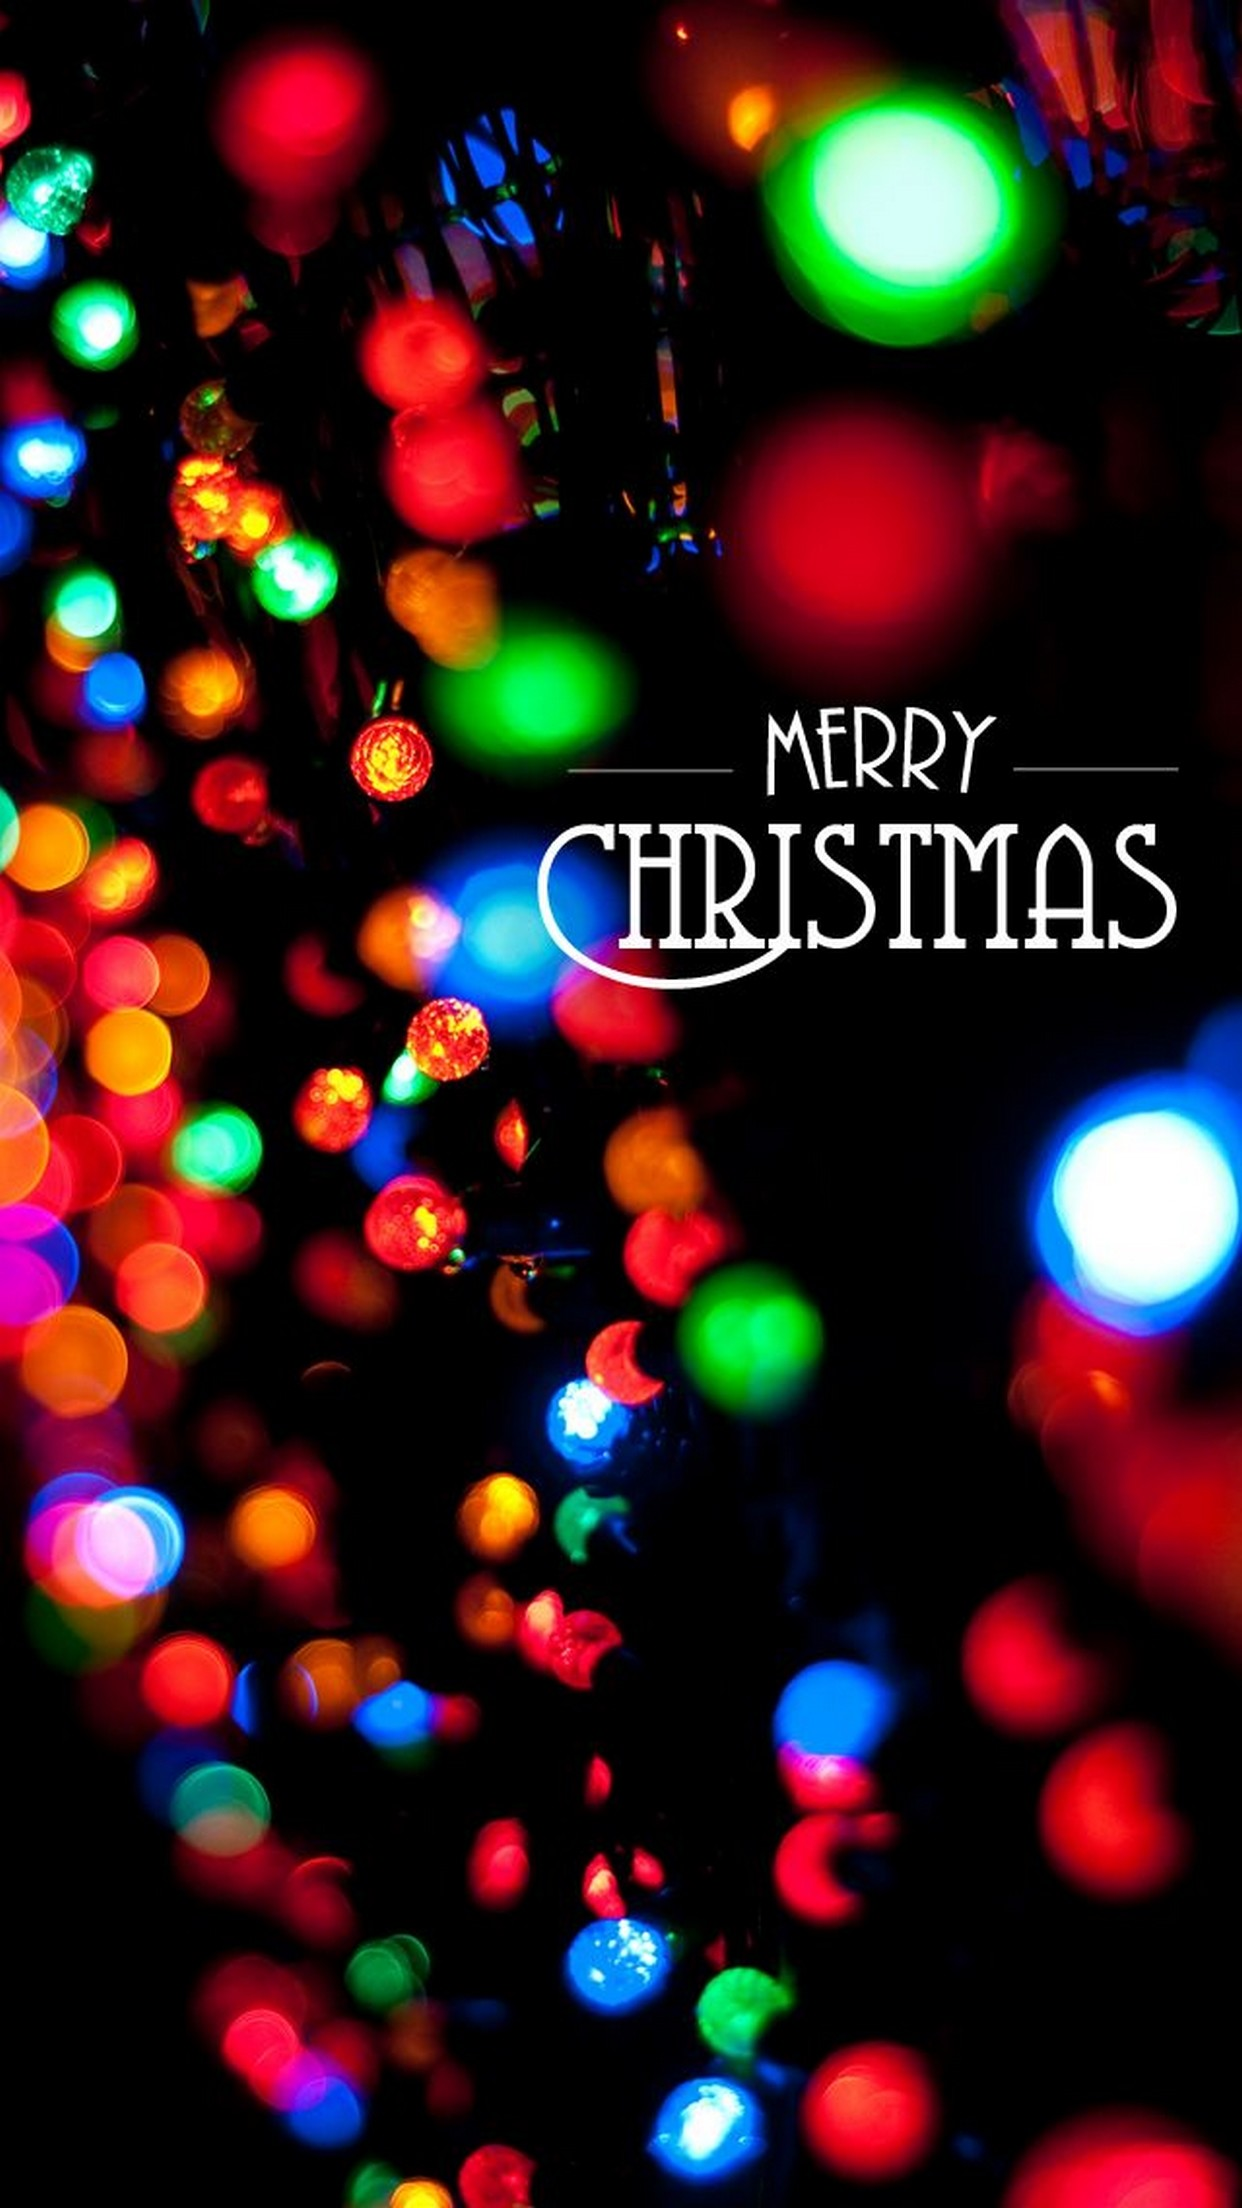 christmas wallpaper for iphone 5